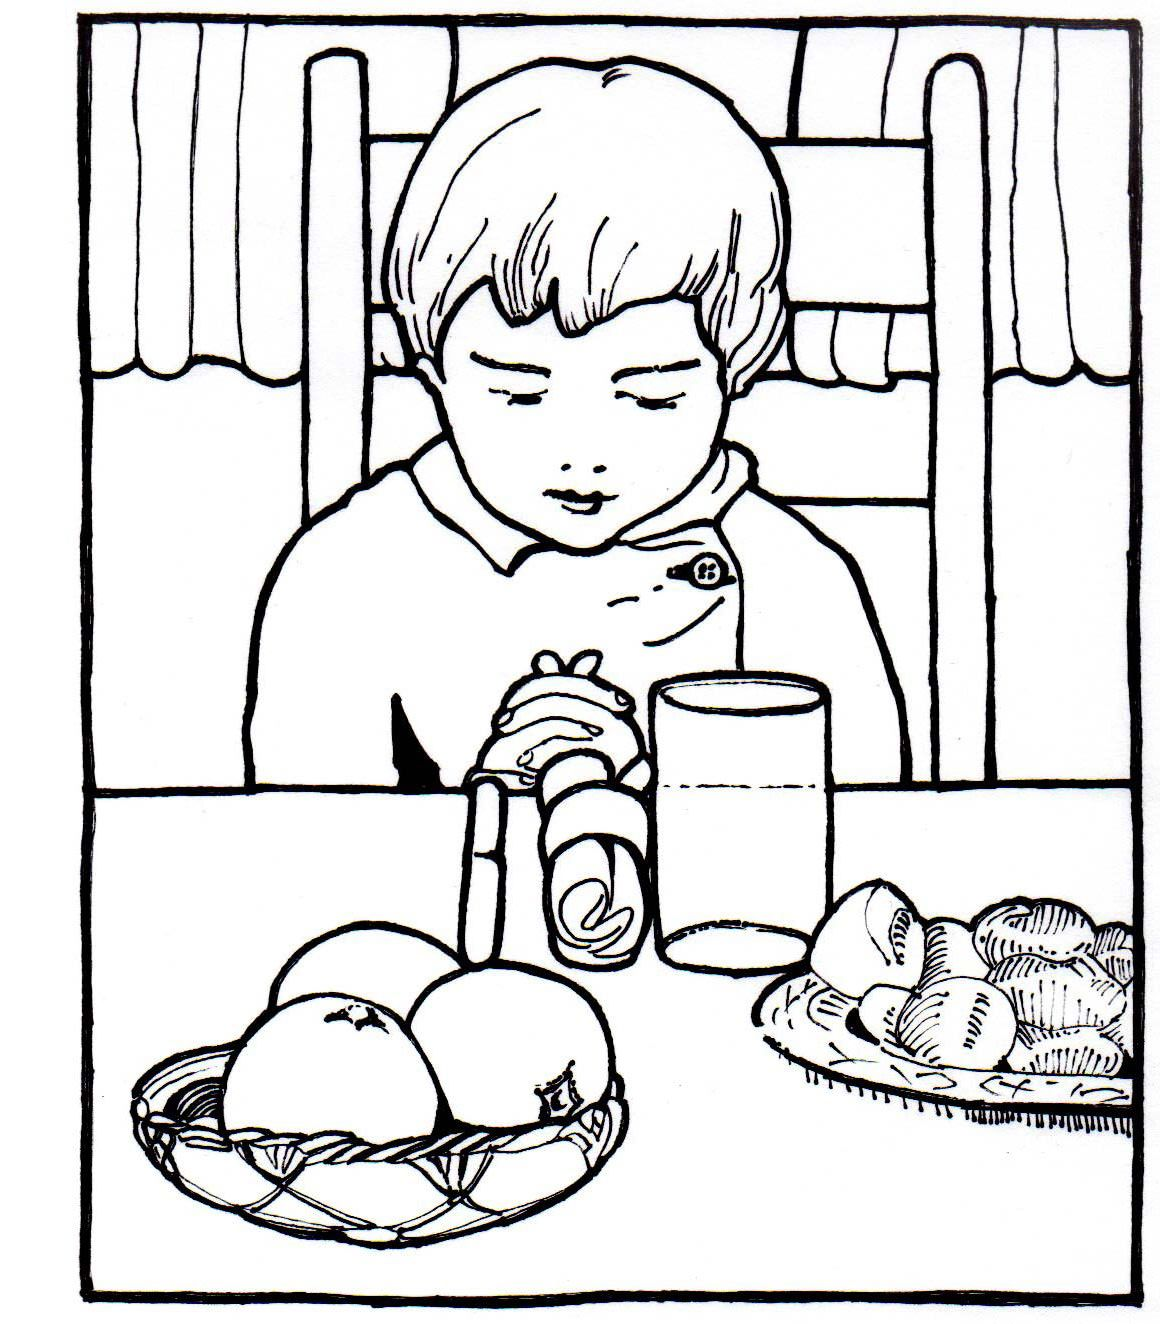 Prayer Coloring Pages For Kids Animal Coloring Pages Sunday